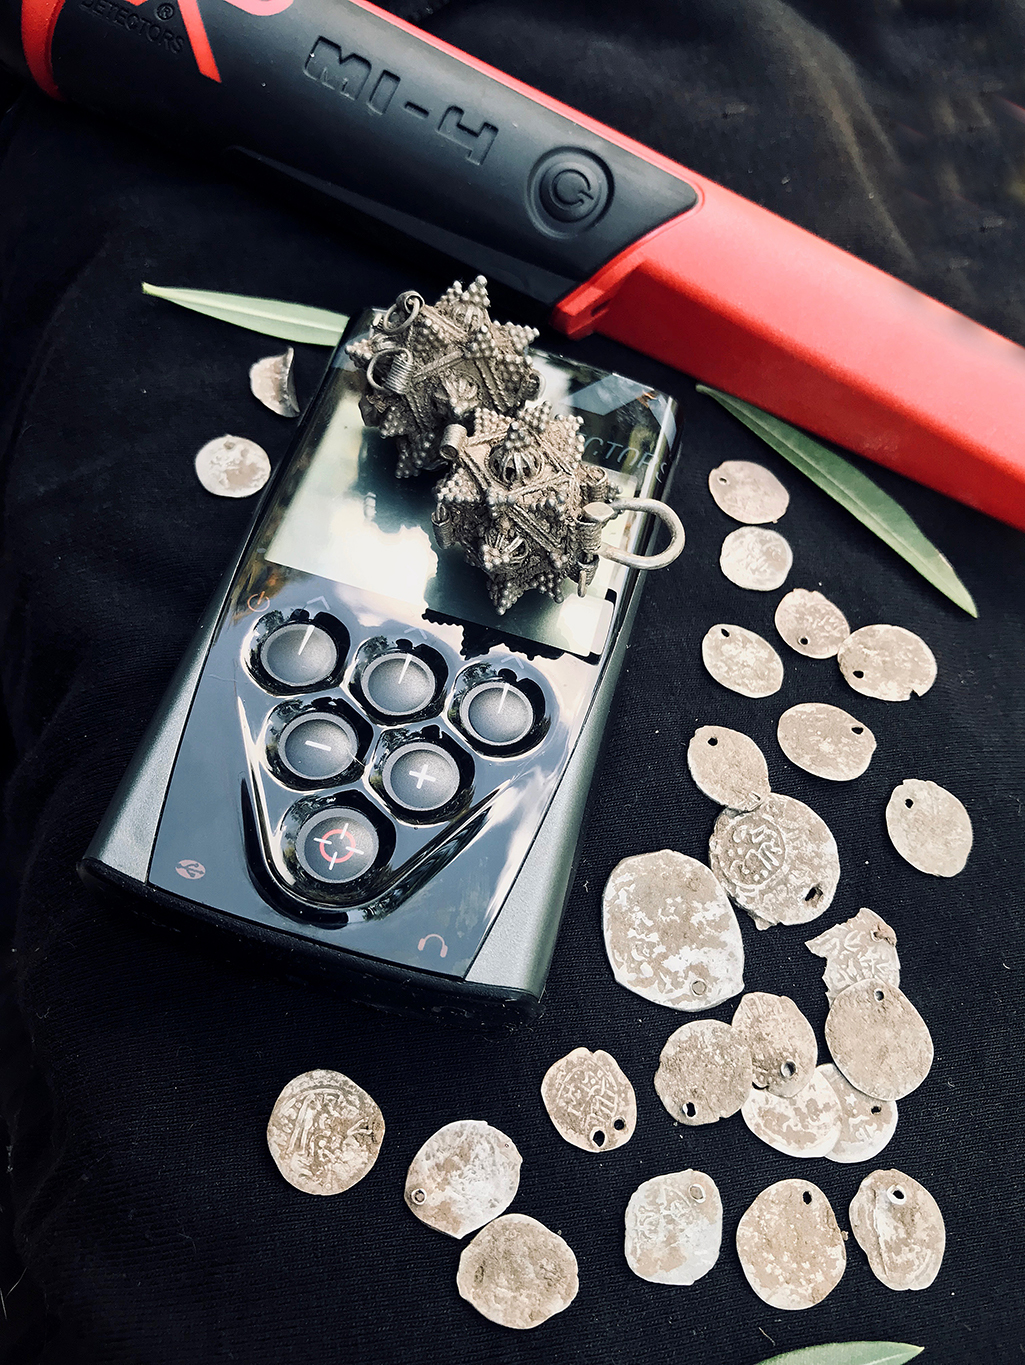 Ancient silver coins found with the XP Deus